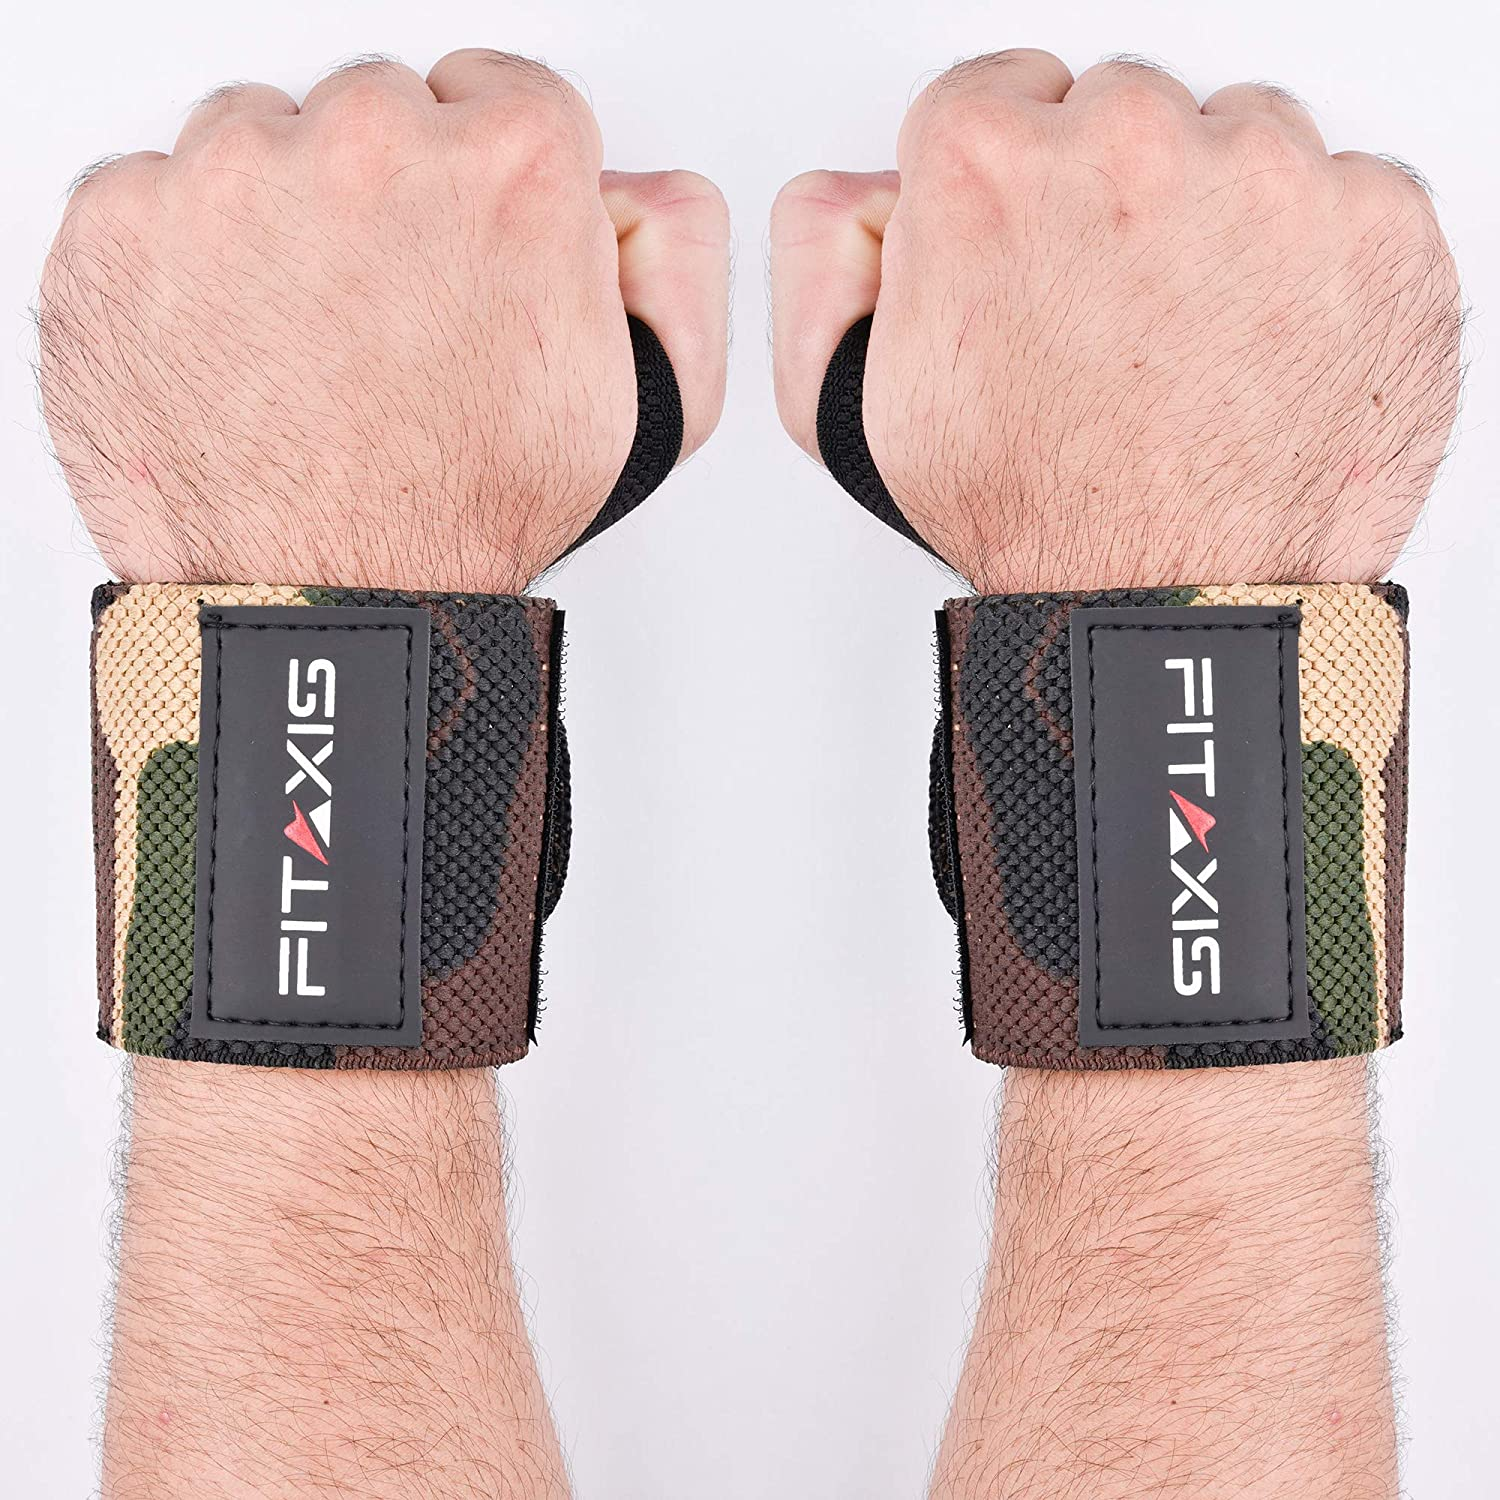 """FITAXIS Wrist Wraps with Thumb Loops Wrist Support Camo Green Mimba Color 18"""" Sold in Pairs, for Men's & Women's Gym-Workout, Body Buliding,Crossfit, Power Lifting, Push Up's"""